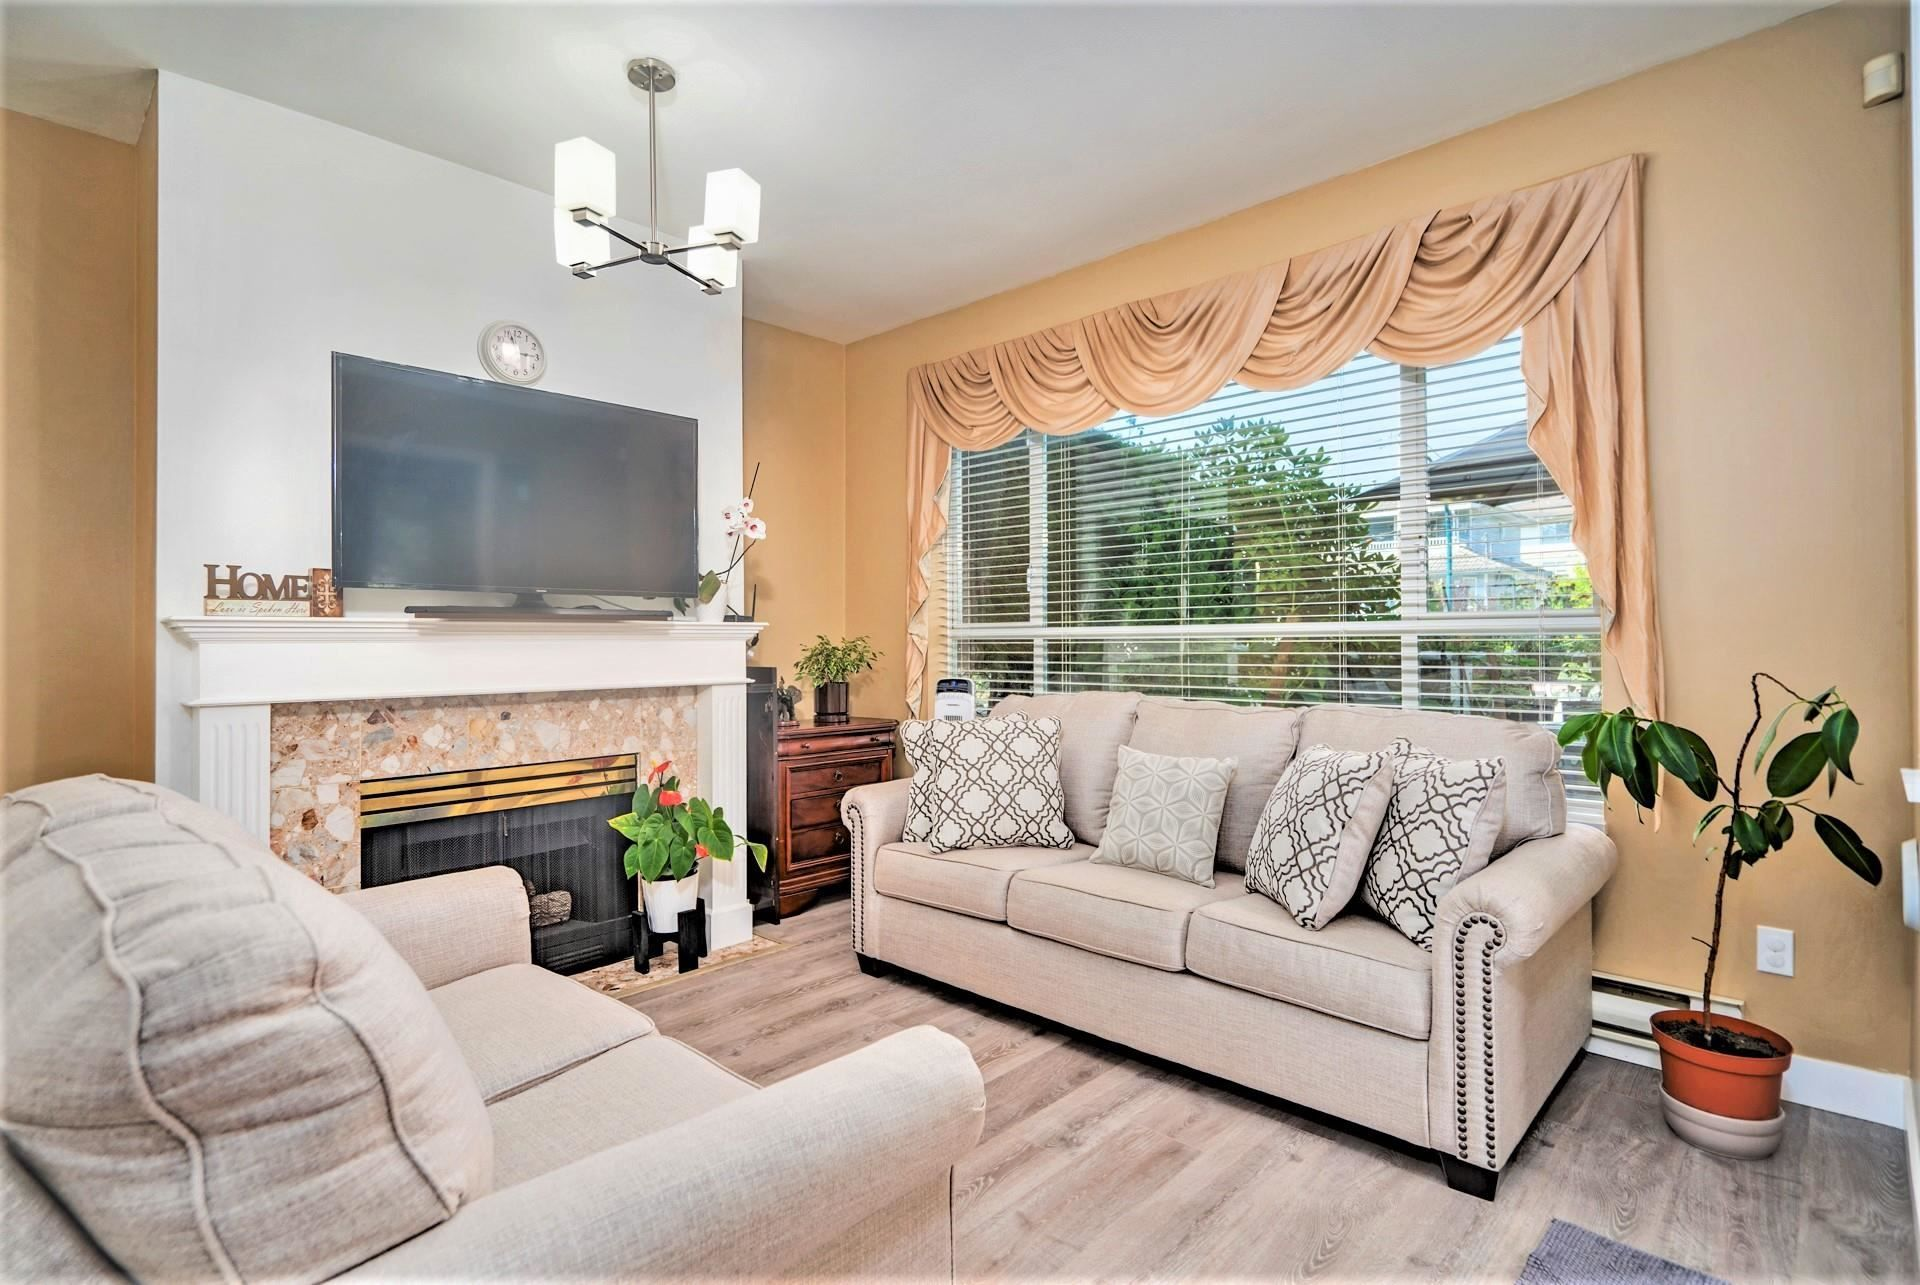 """Main Photo: 109 2340 HAWTHORNE Avenue in Port Coquitlam: Central Pt Coquitlam Condo for sale in """"BARRINGTON PLACE"""" : MLS®# R2609891"""